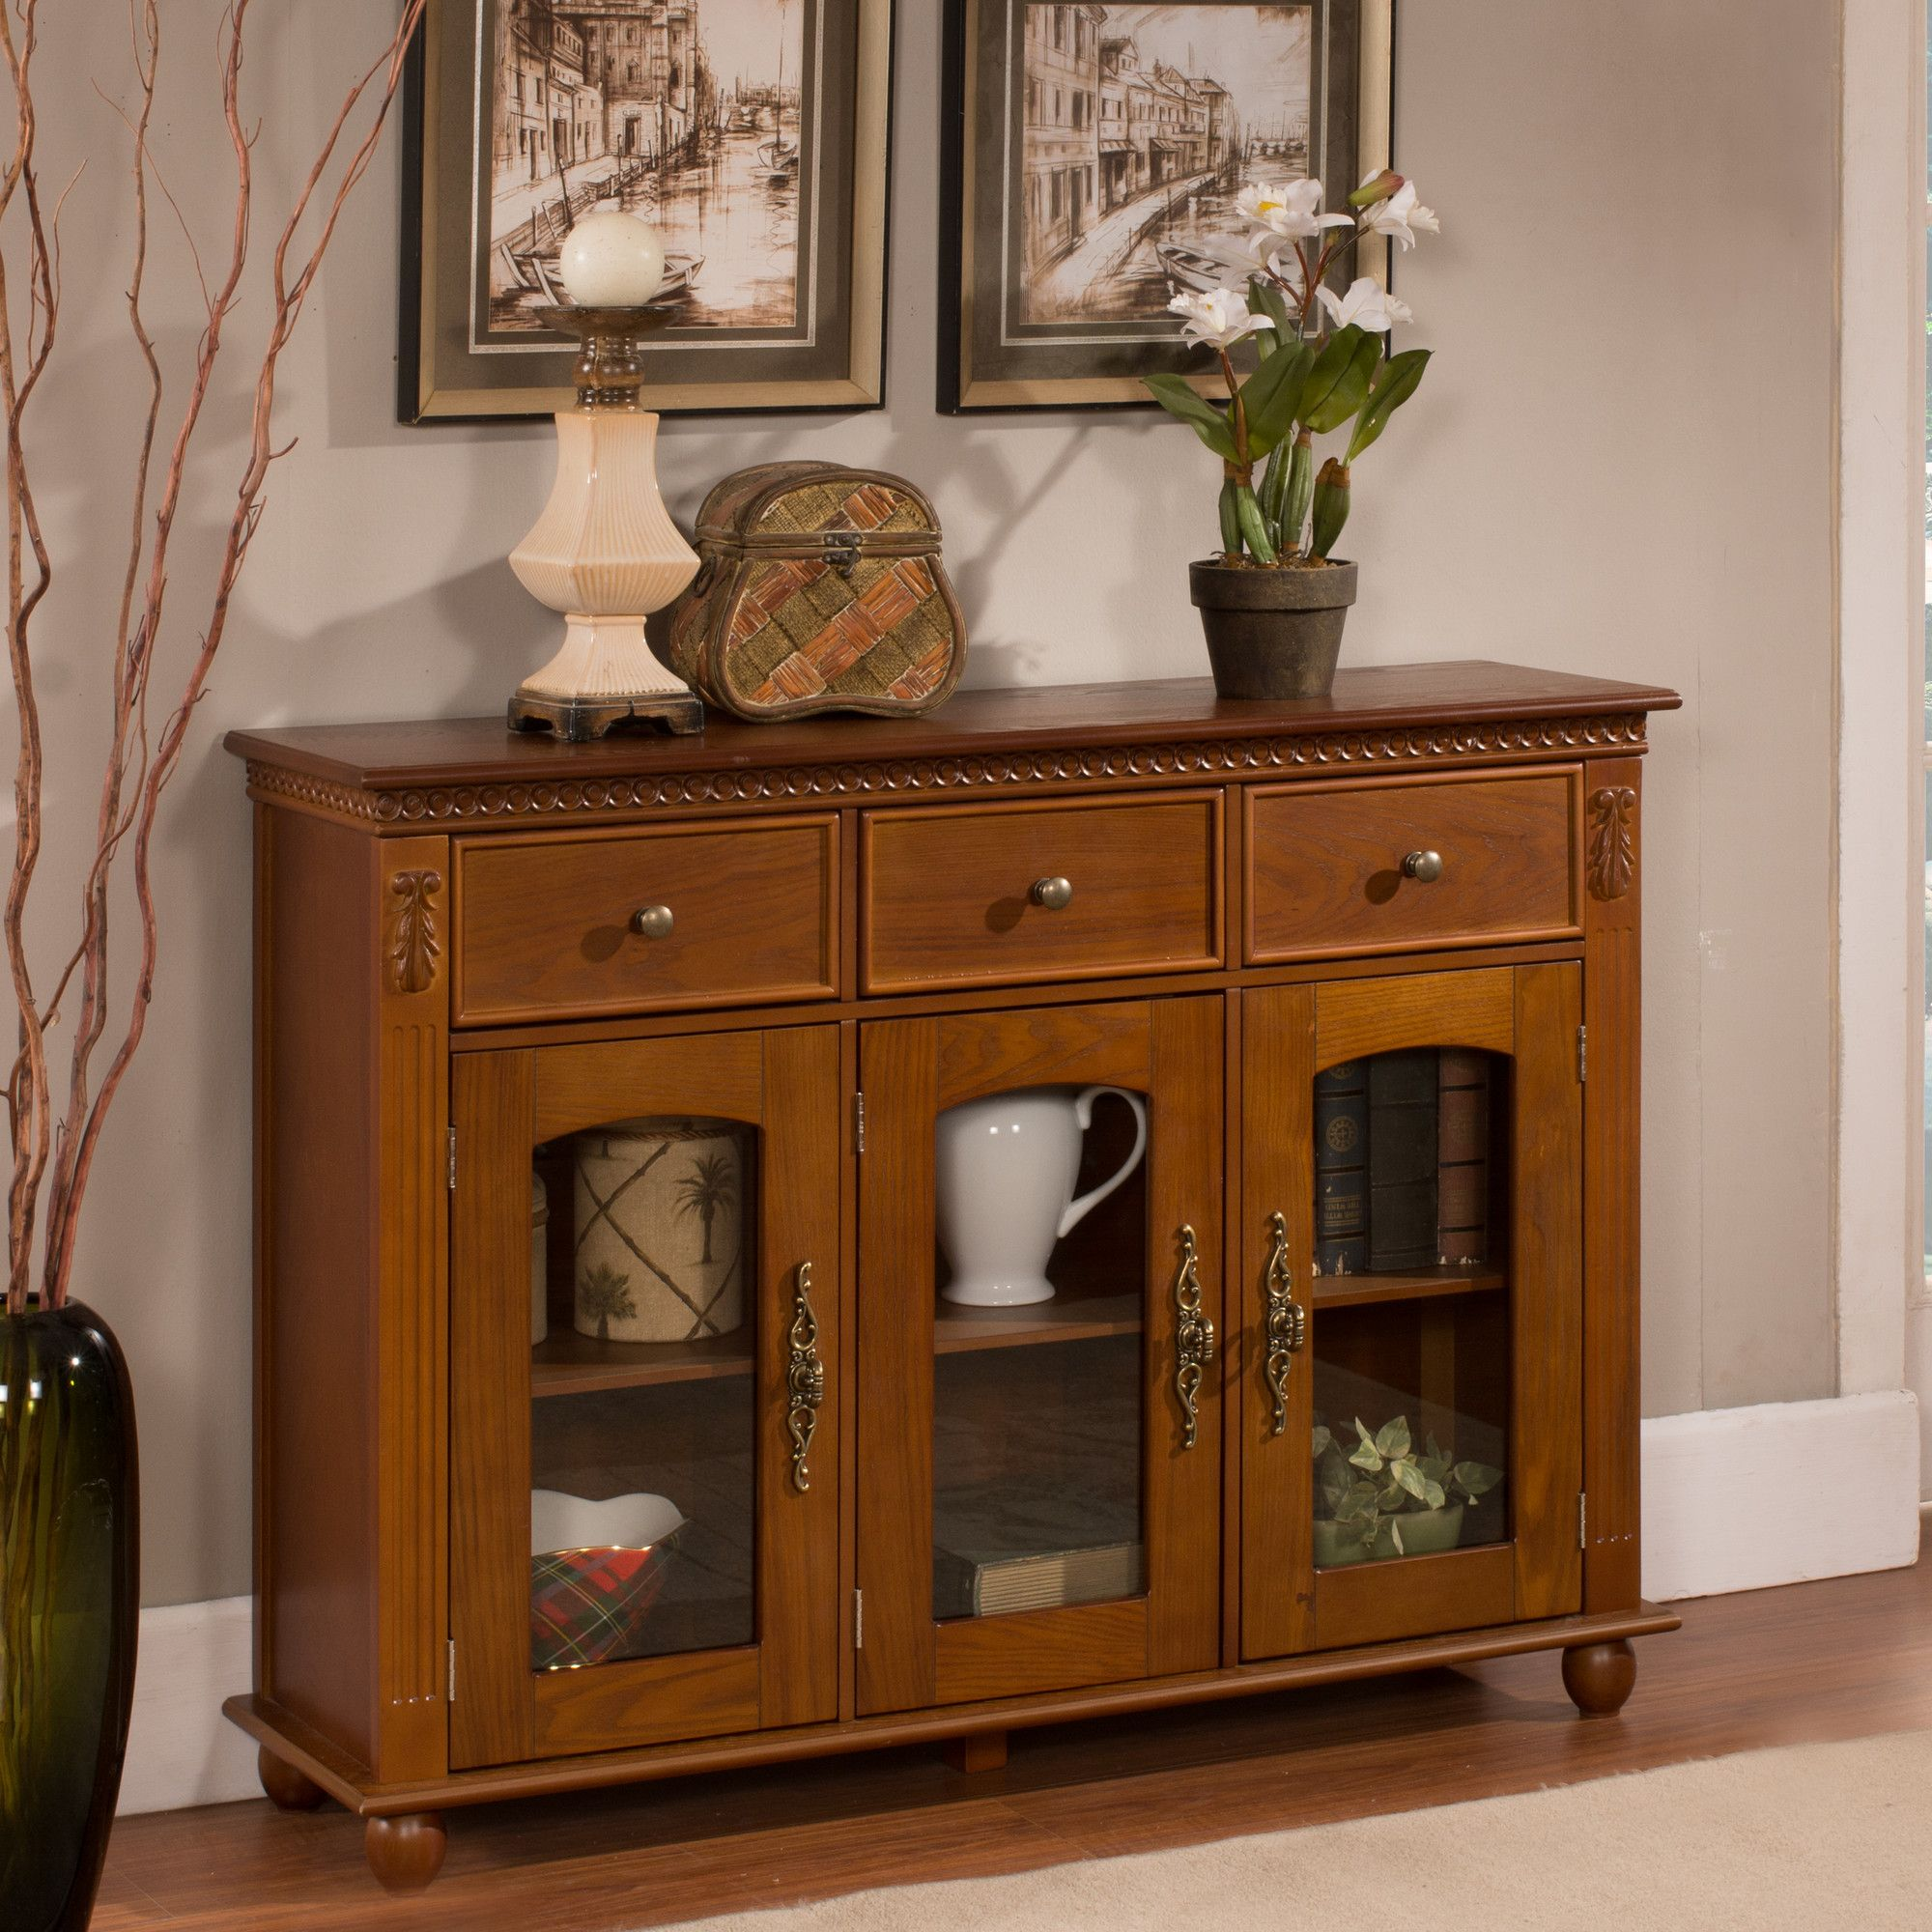 Michigamme Console Table Cabinet Gl Front Door Doors Tv Furniture Dining